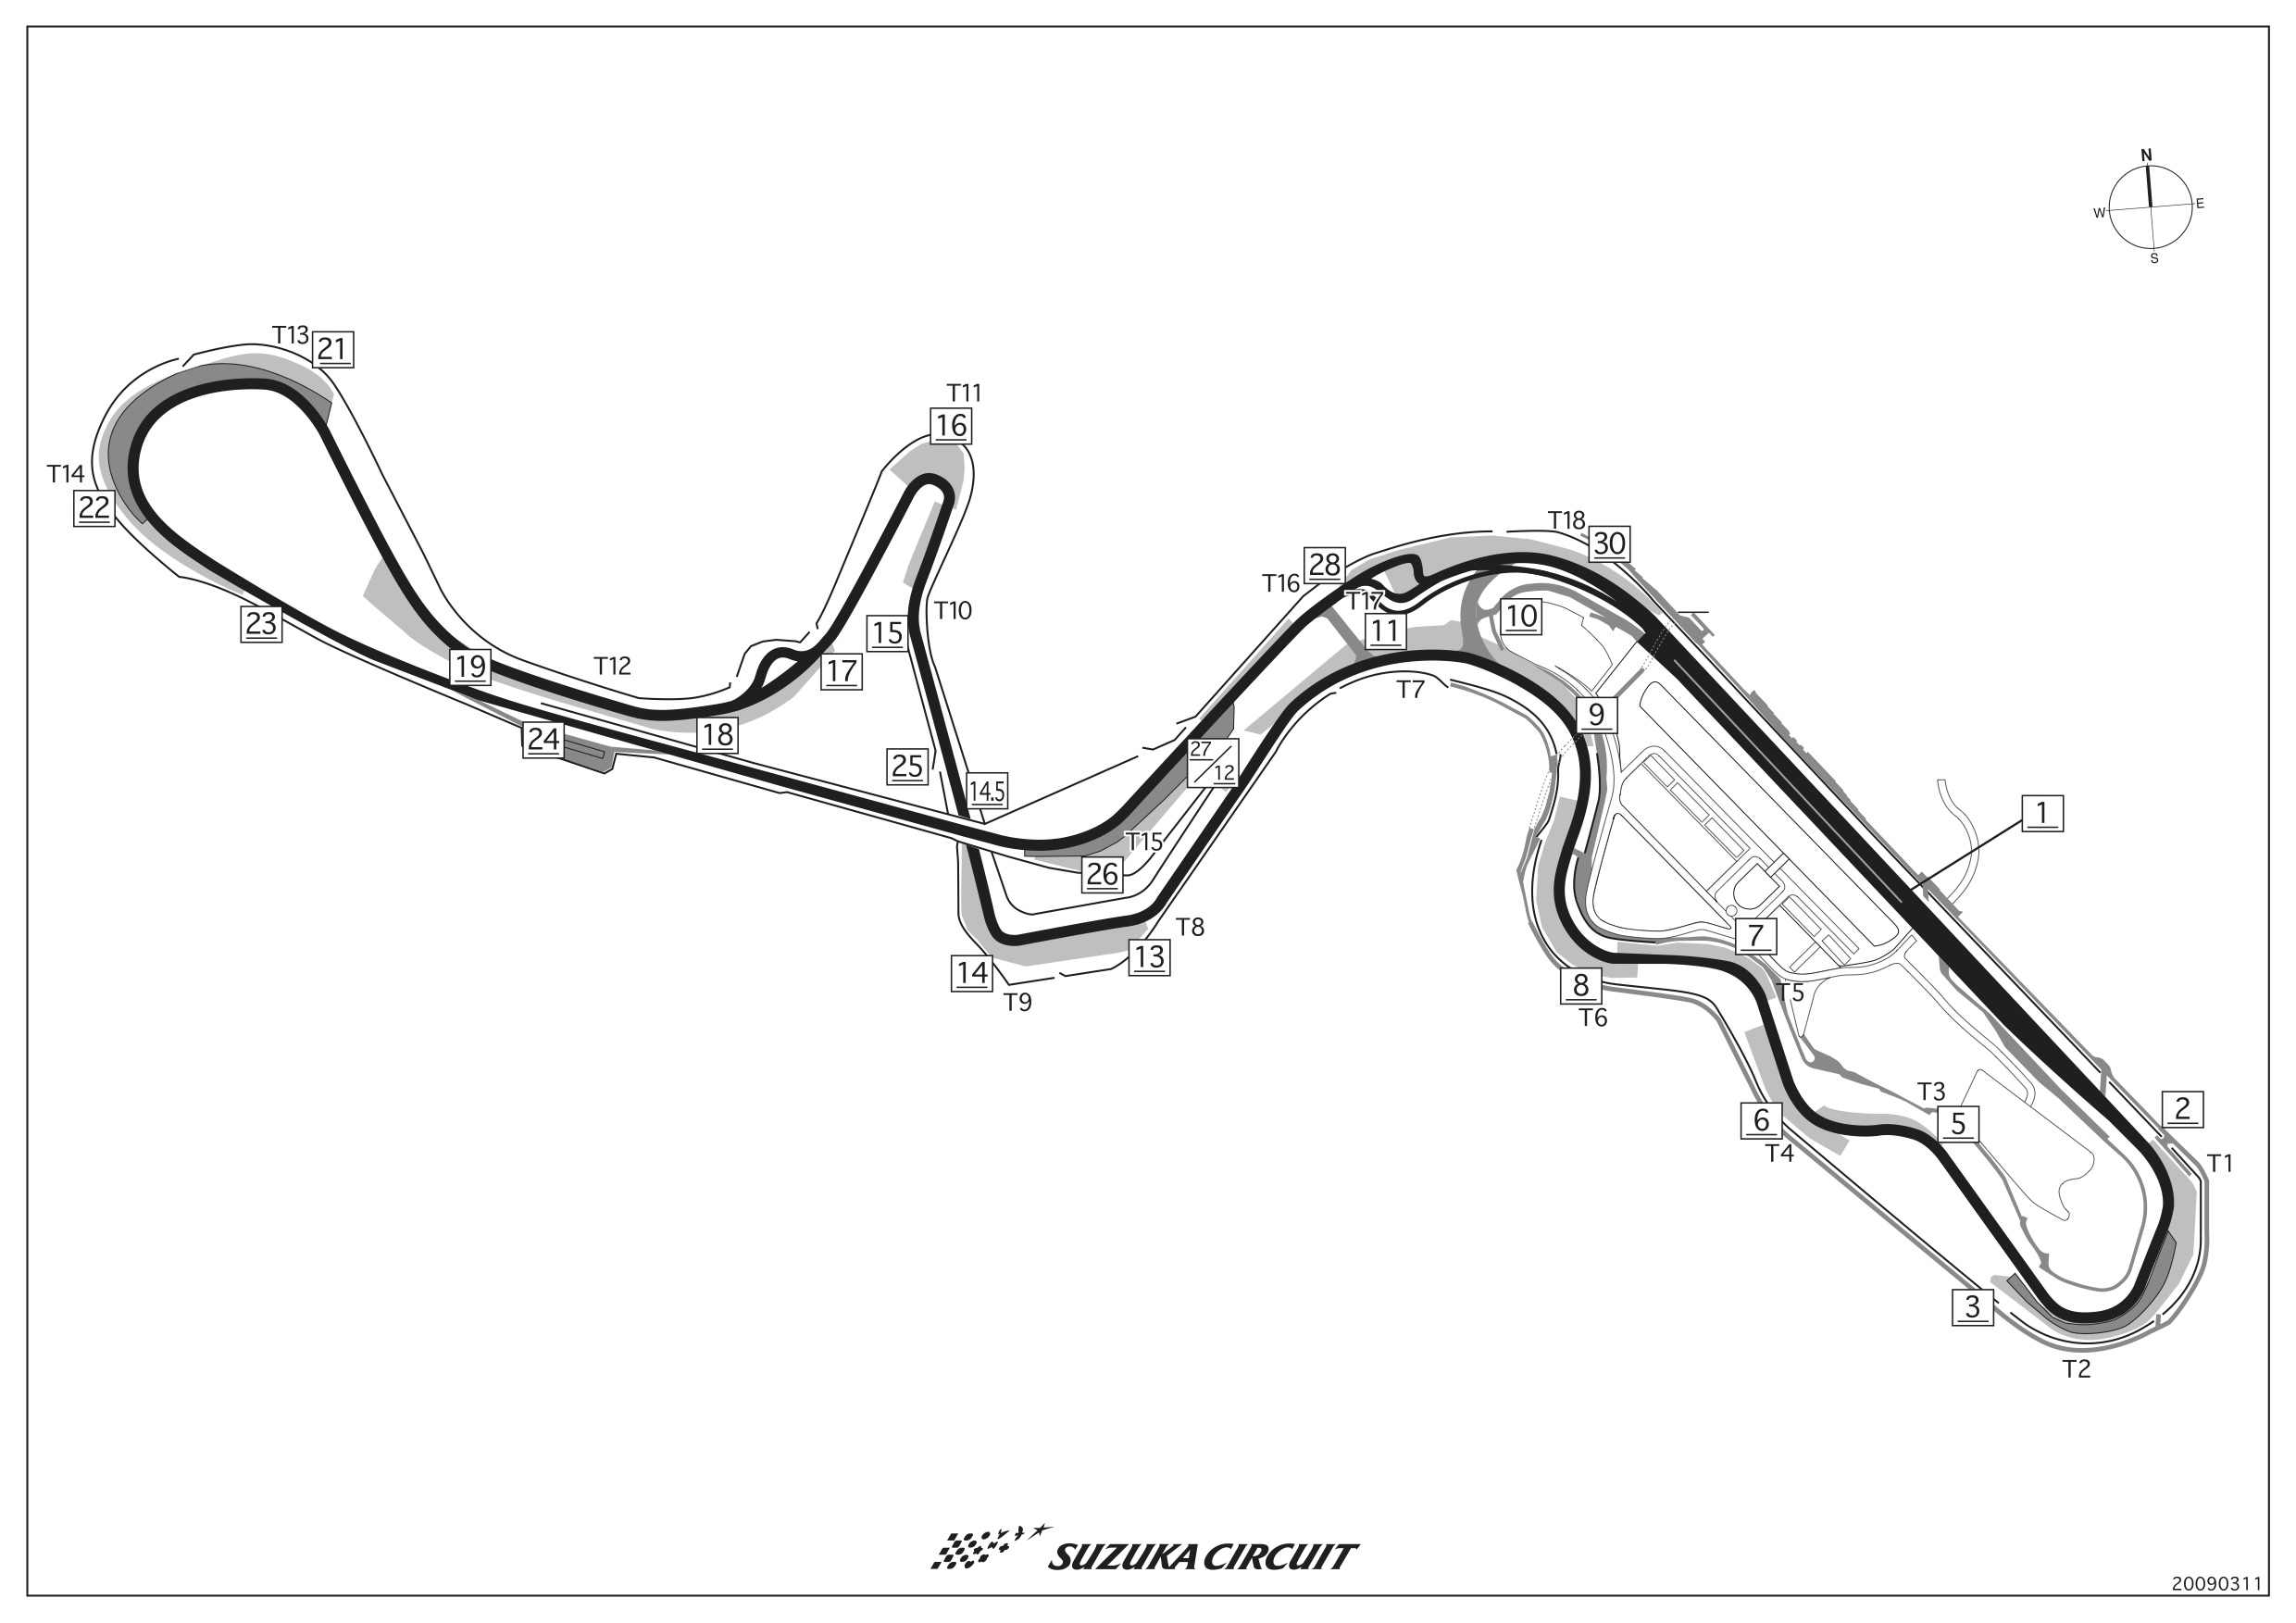 Suzuka International Circuit